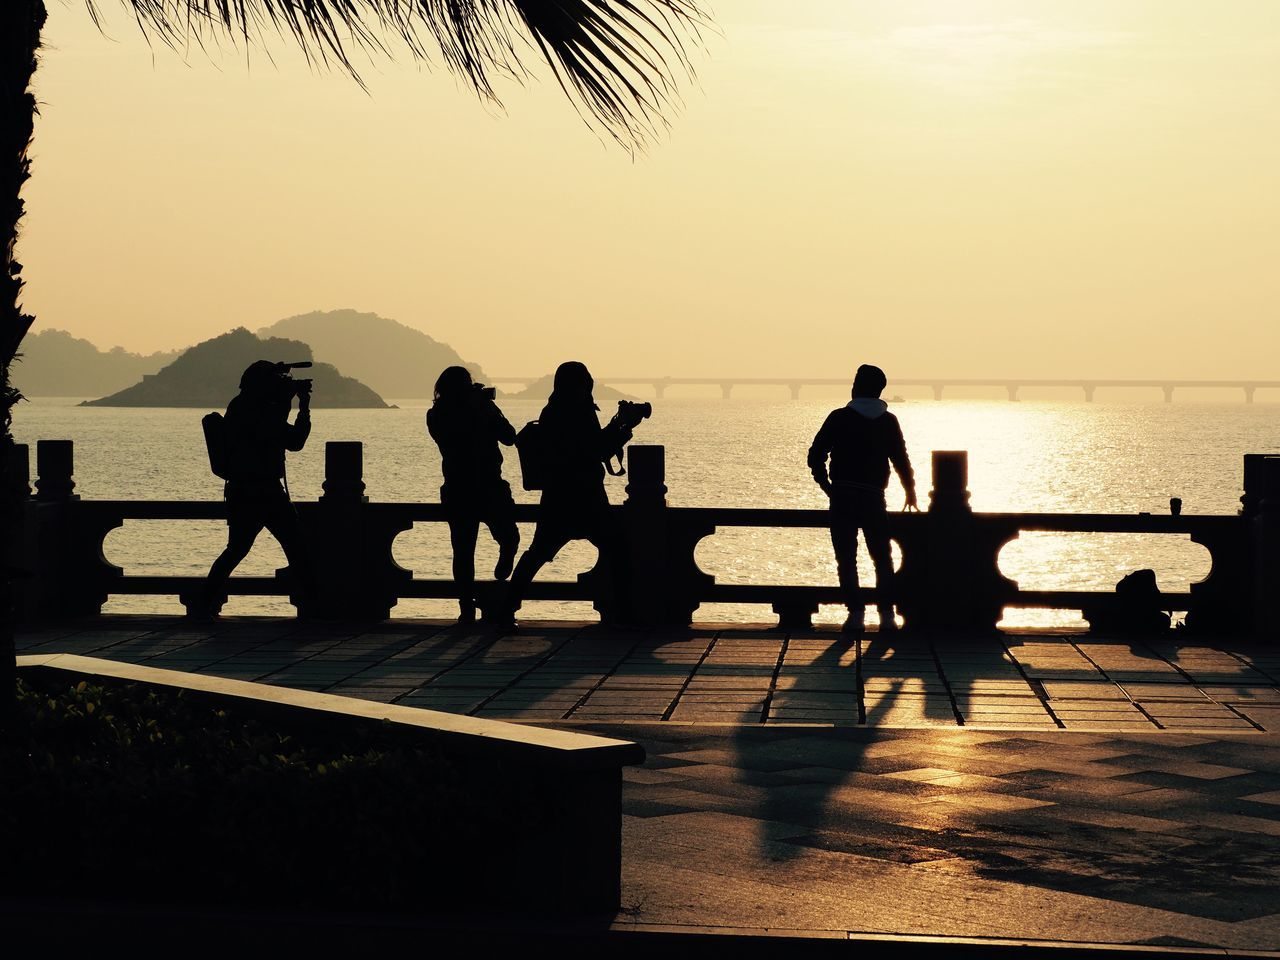 Photoshoot Sunrise Silhouette Leisure Activity Lifestyles Water Men Transportation Sea Outline Real People Sky Beauty In Nature Outdoors Nature Day Sunrise Sunrise Silhouette Street Zhuhai China